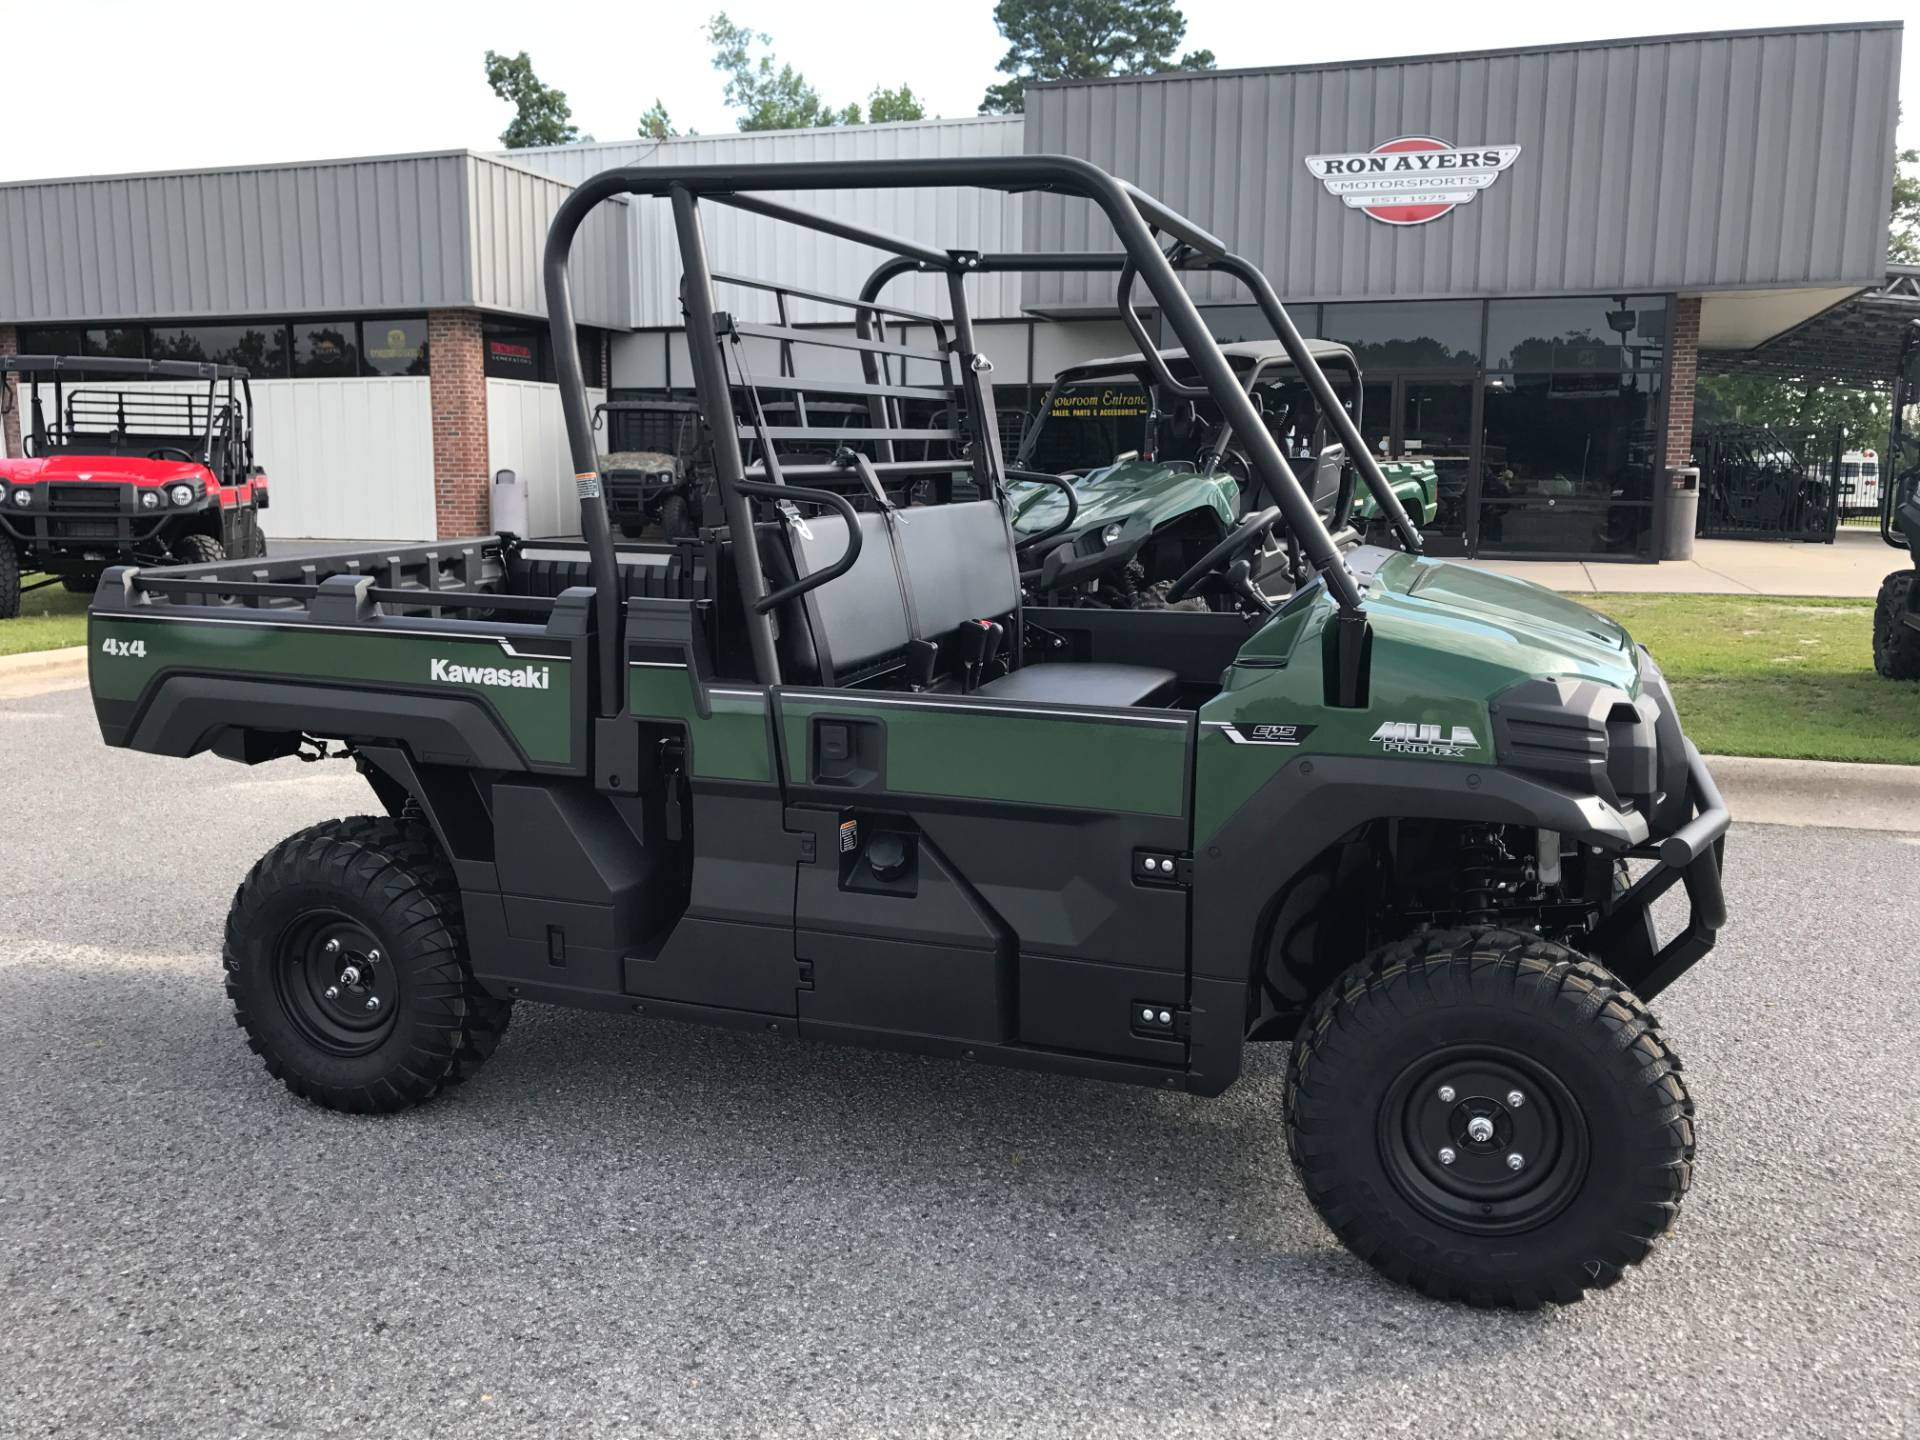 2018 Kawasaki Mule PRO-FX EPS in Greenville, North Carolina - Photo 2